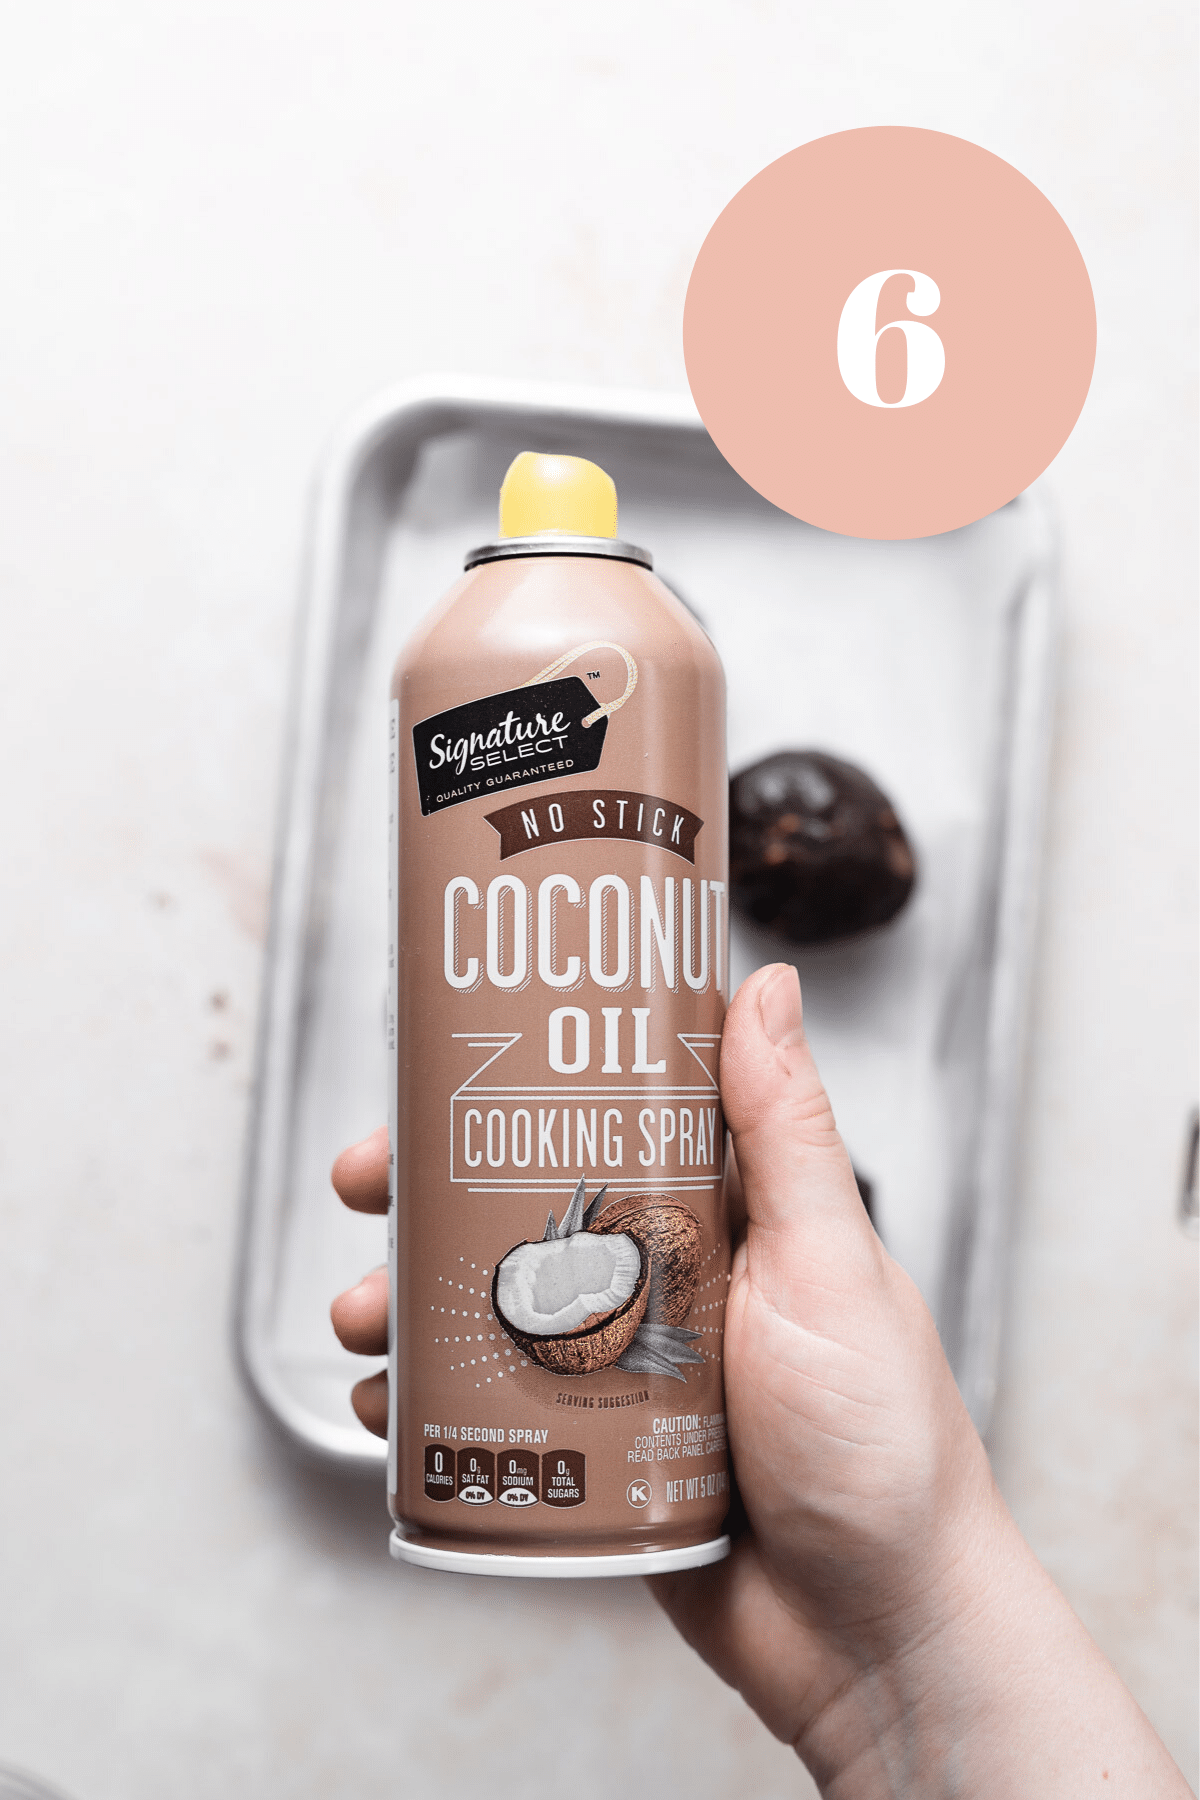 using a coconut oil baking spray to oil their hands